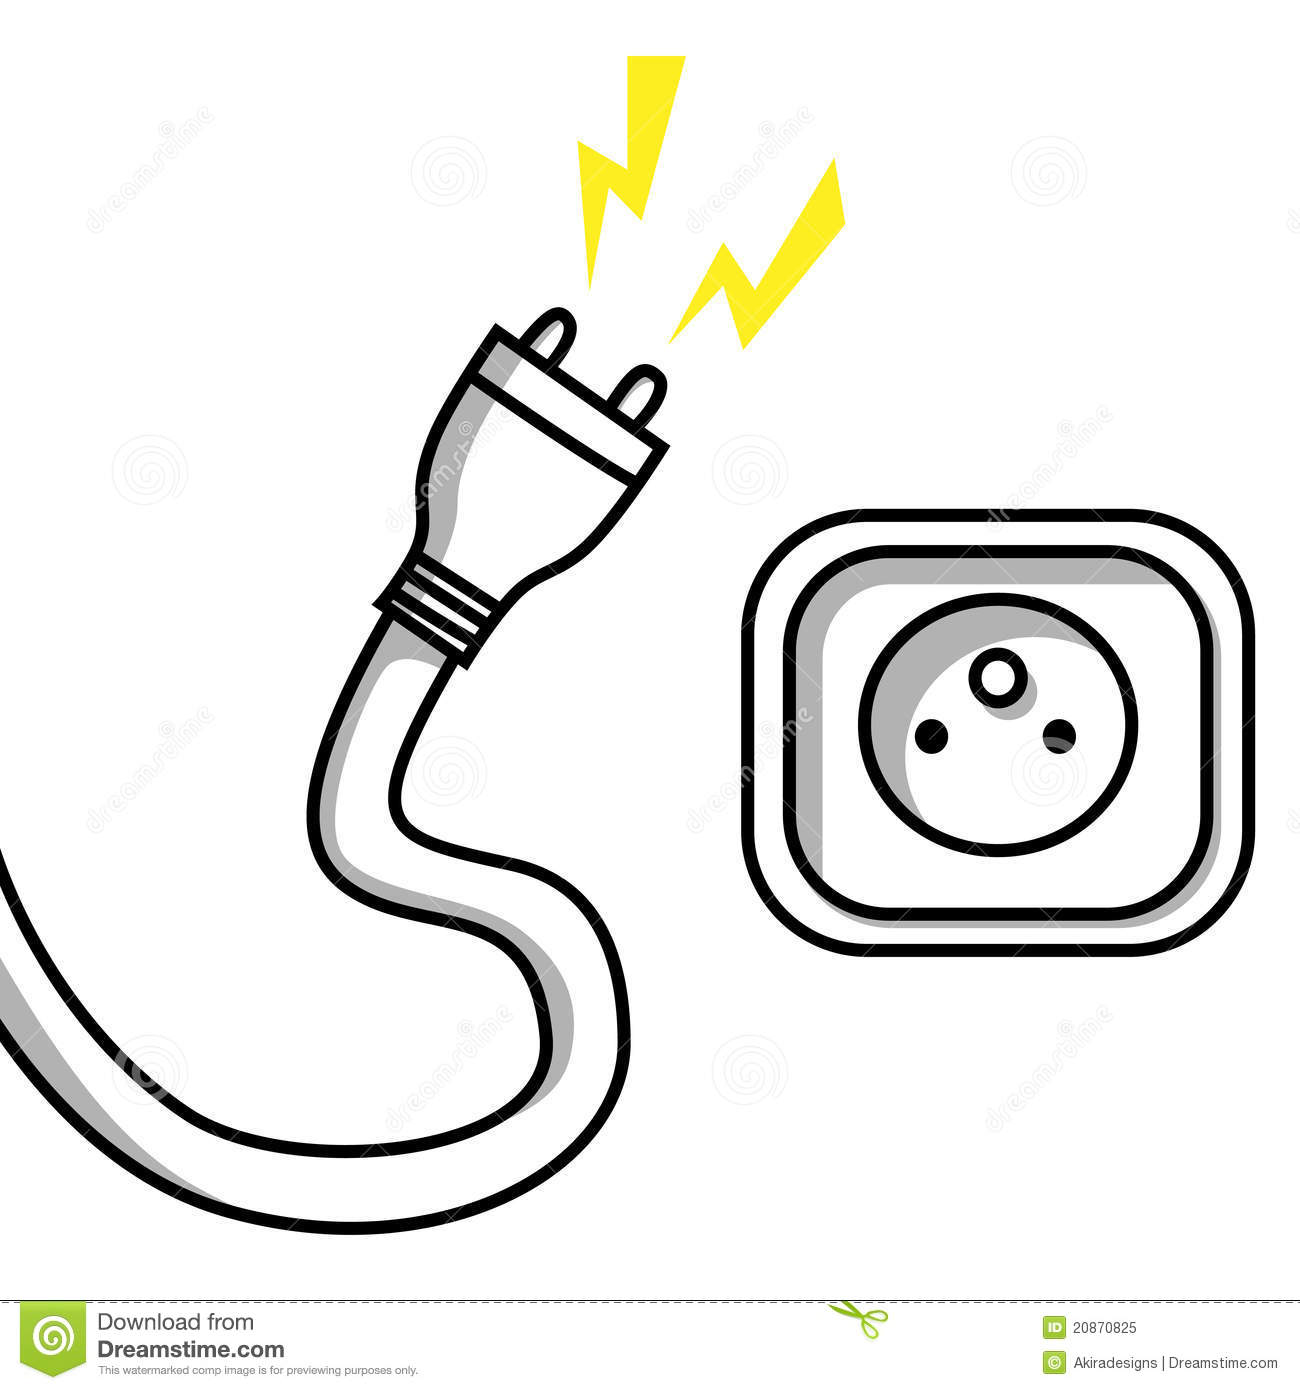 hight resolution of illustration of an unplugged cable and a socket